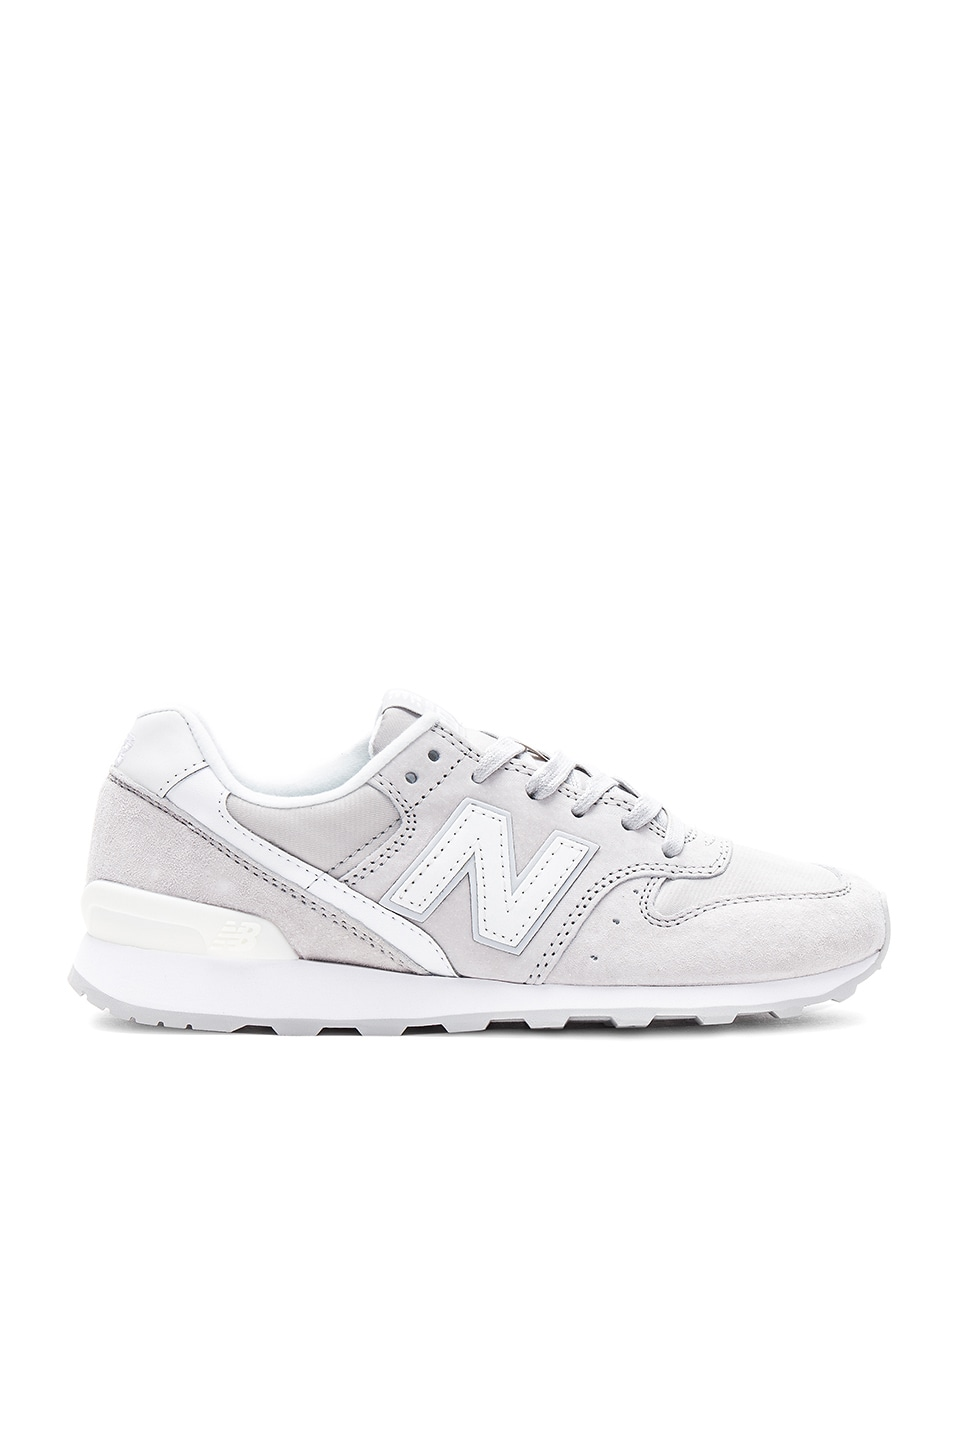 new style 26fef a15ac New Balance 696 Sneaker in Overcast & Seasalt | REVOLVE